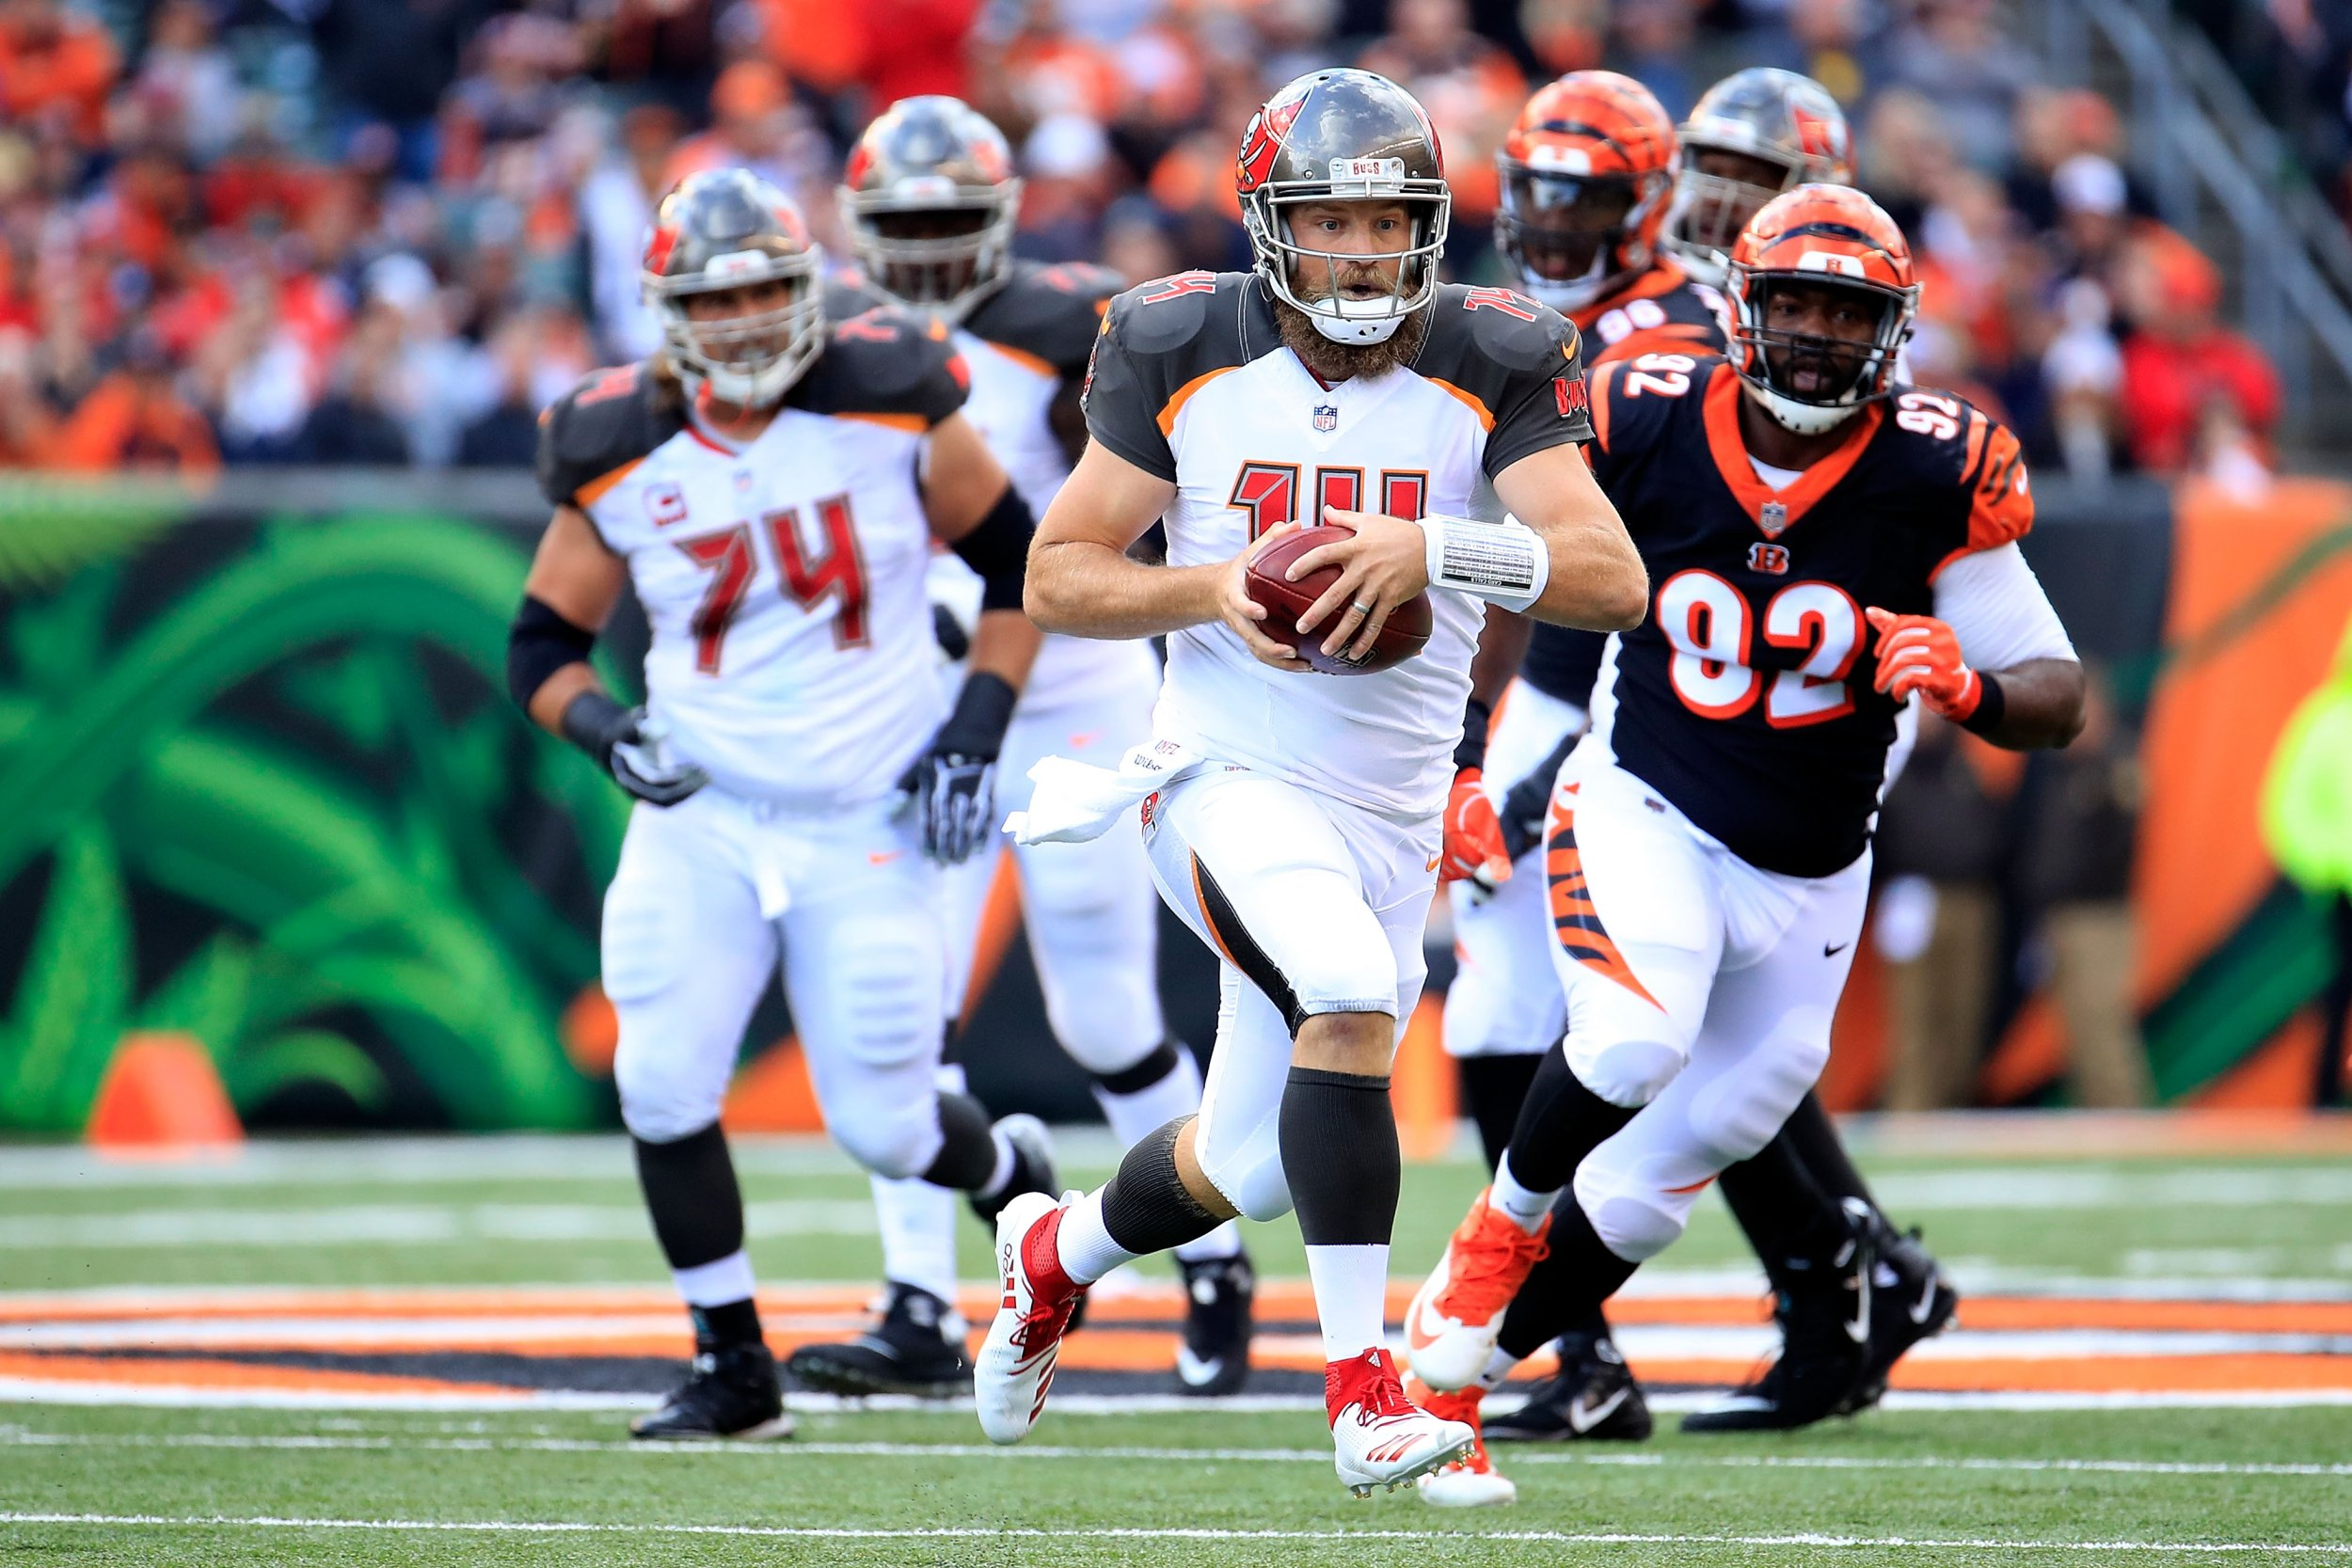 Fantasy Football: Week 9 Best Waiver-wire Targets to Add as Ryan Fitzpatrick returns